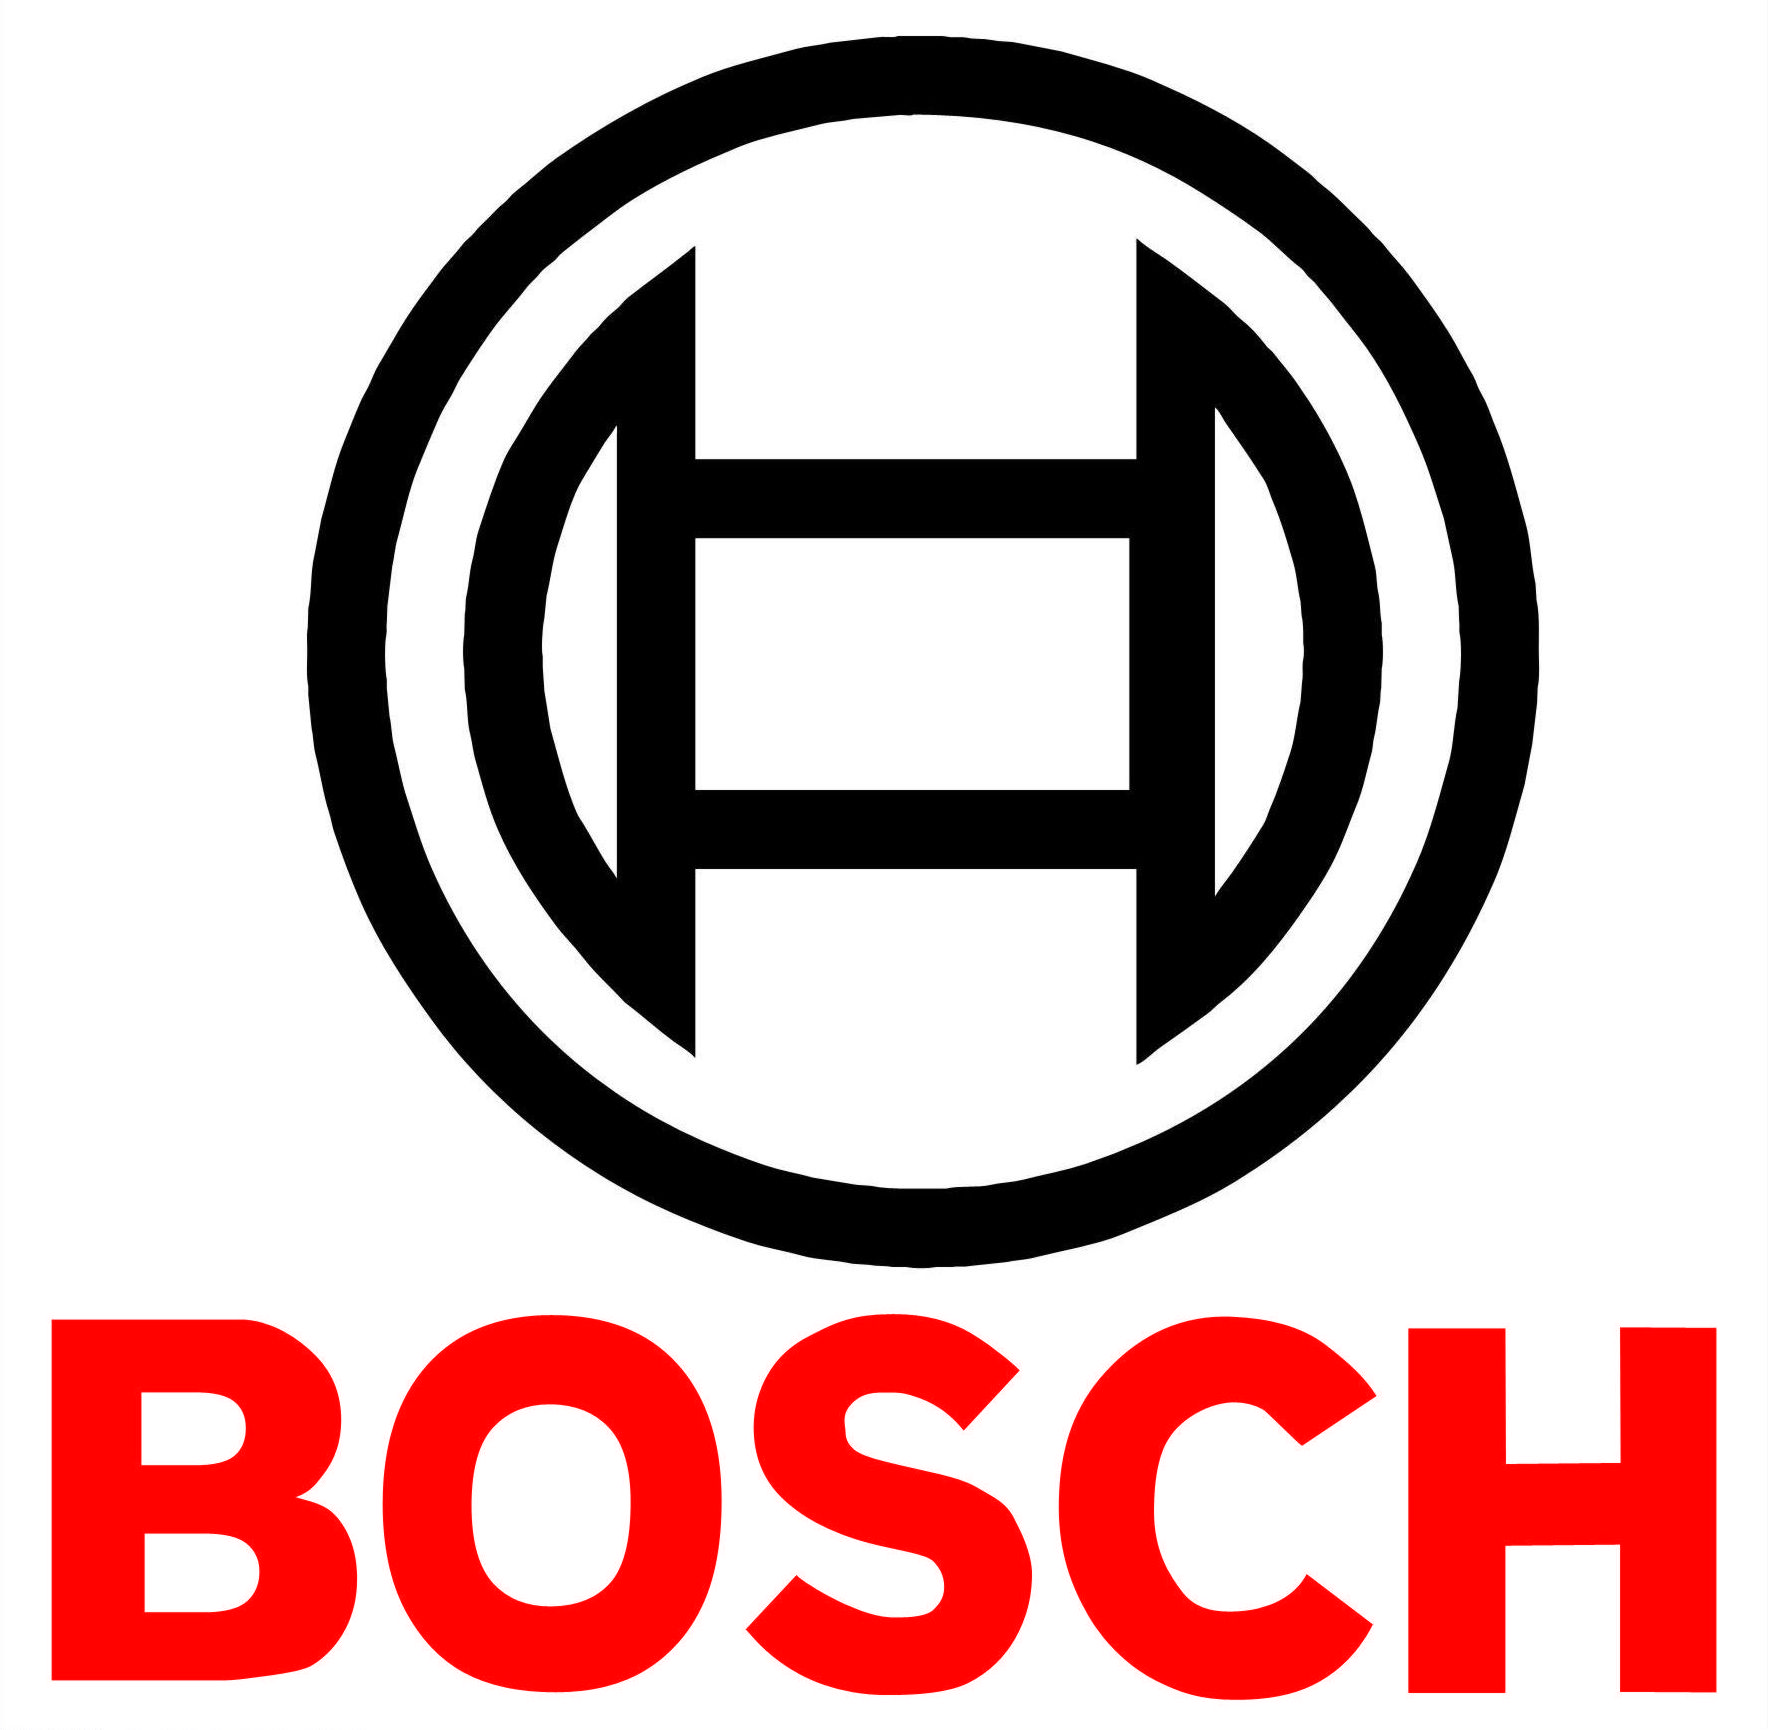 Simple brand bosch logo 3d download png #39995